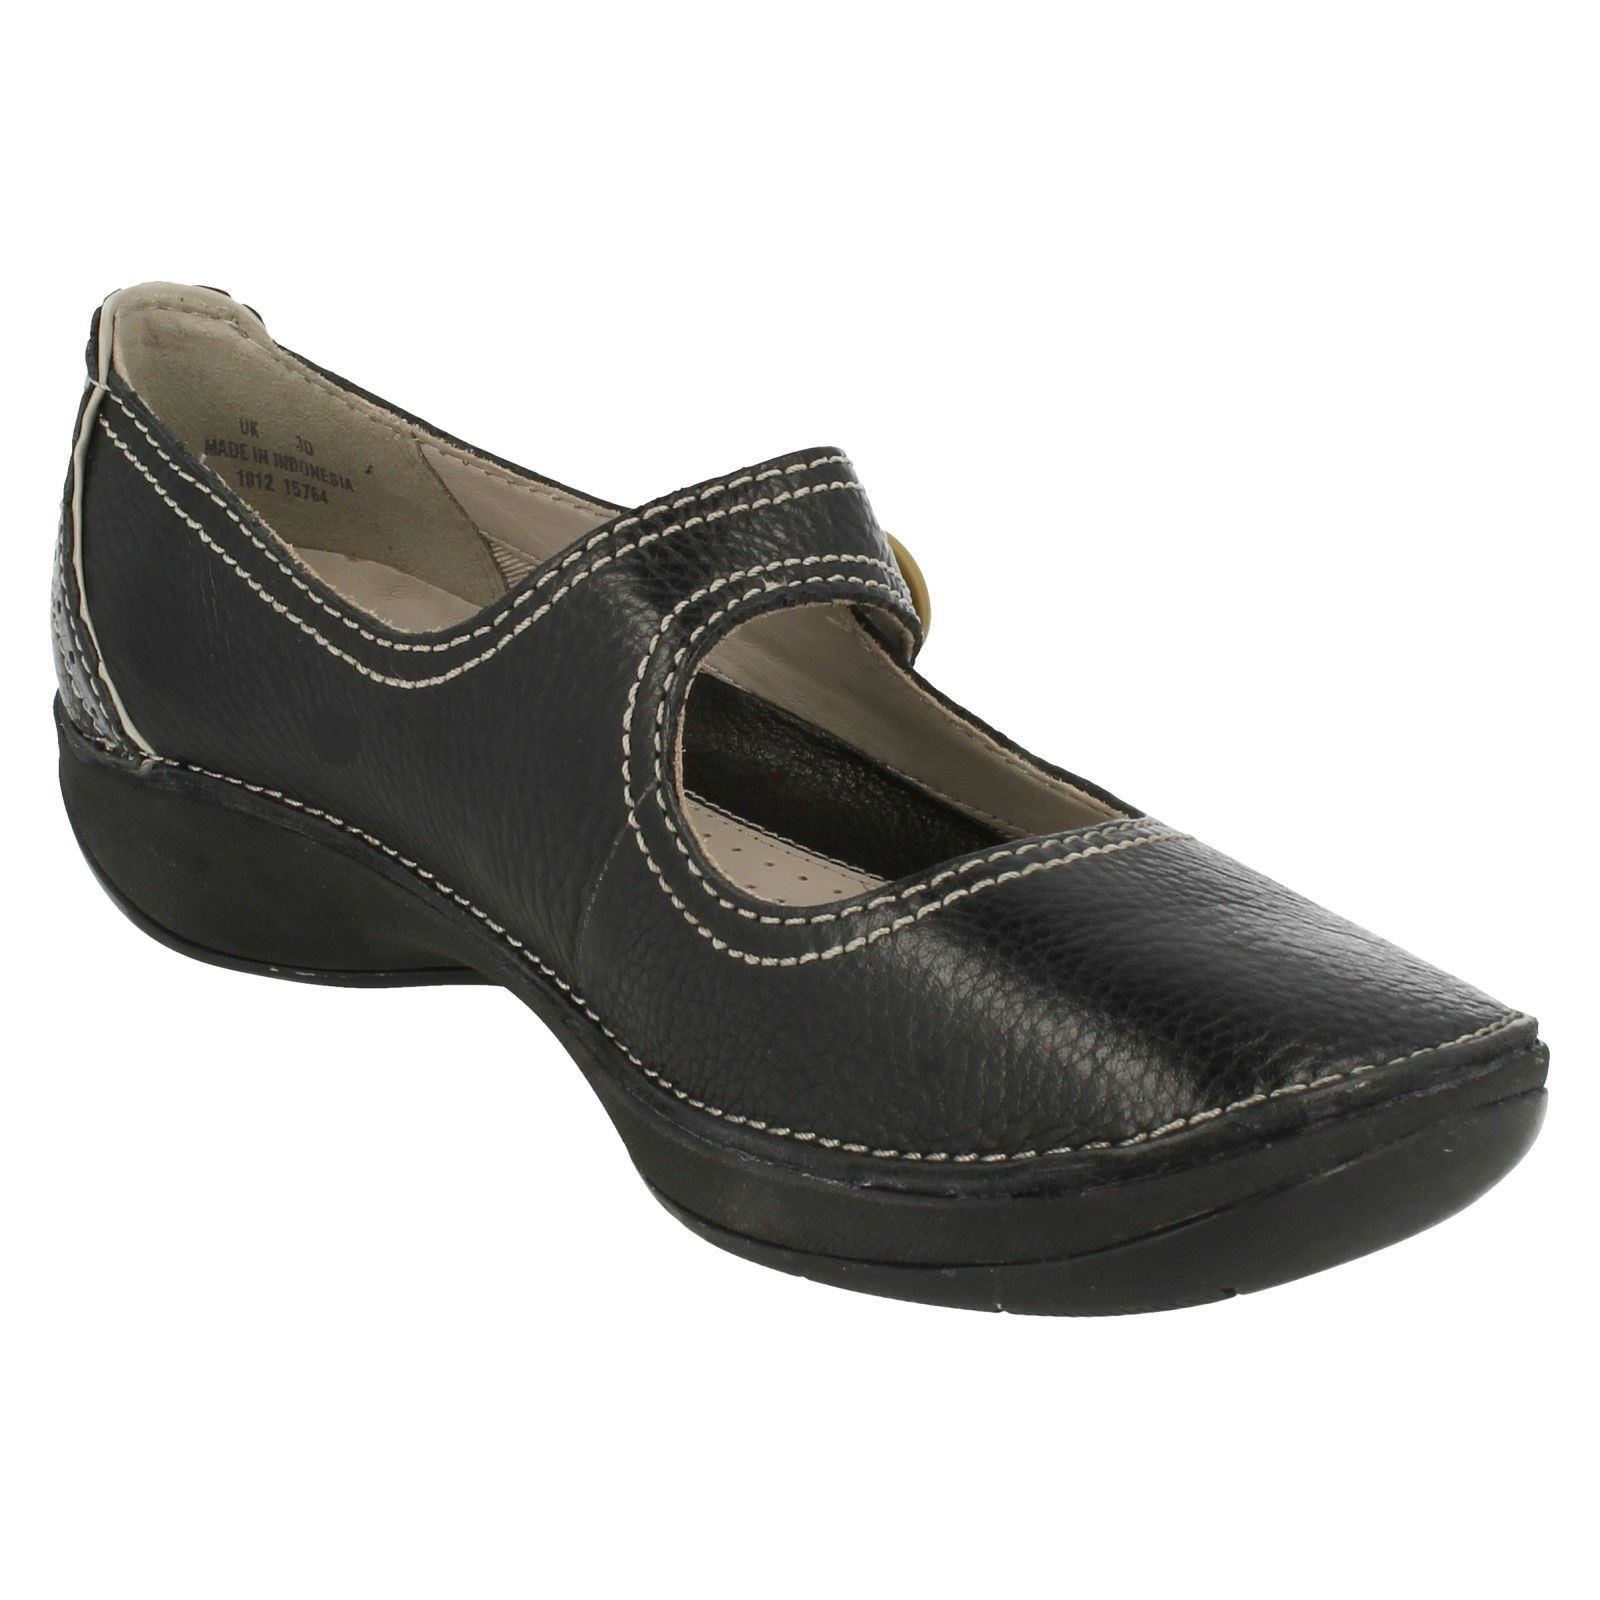 Clarks Ladies Navy Flat Shoes